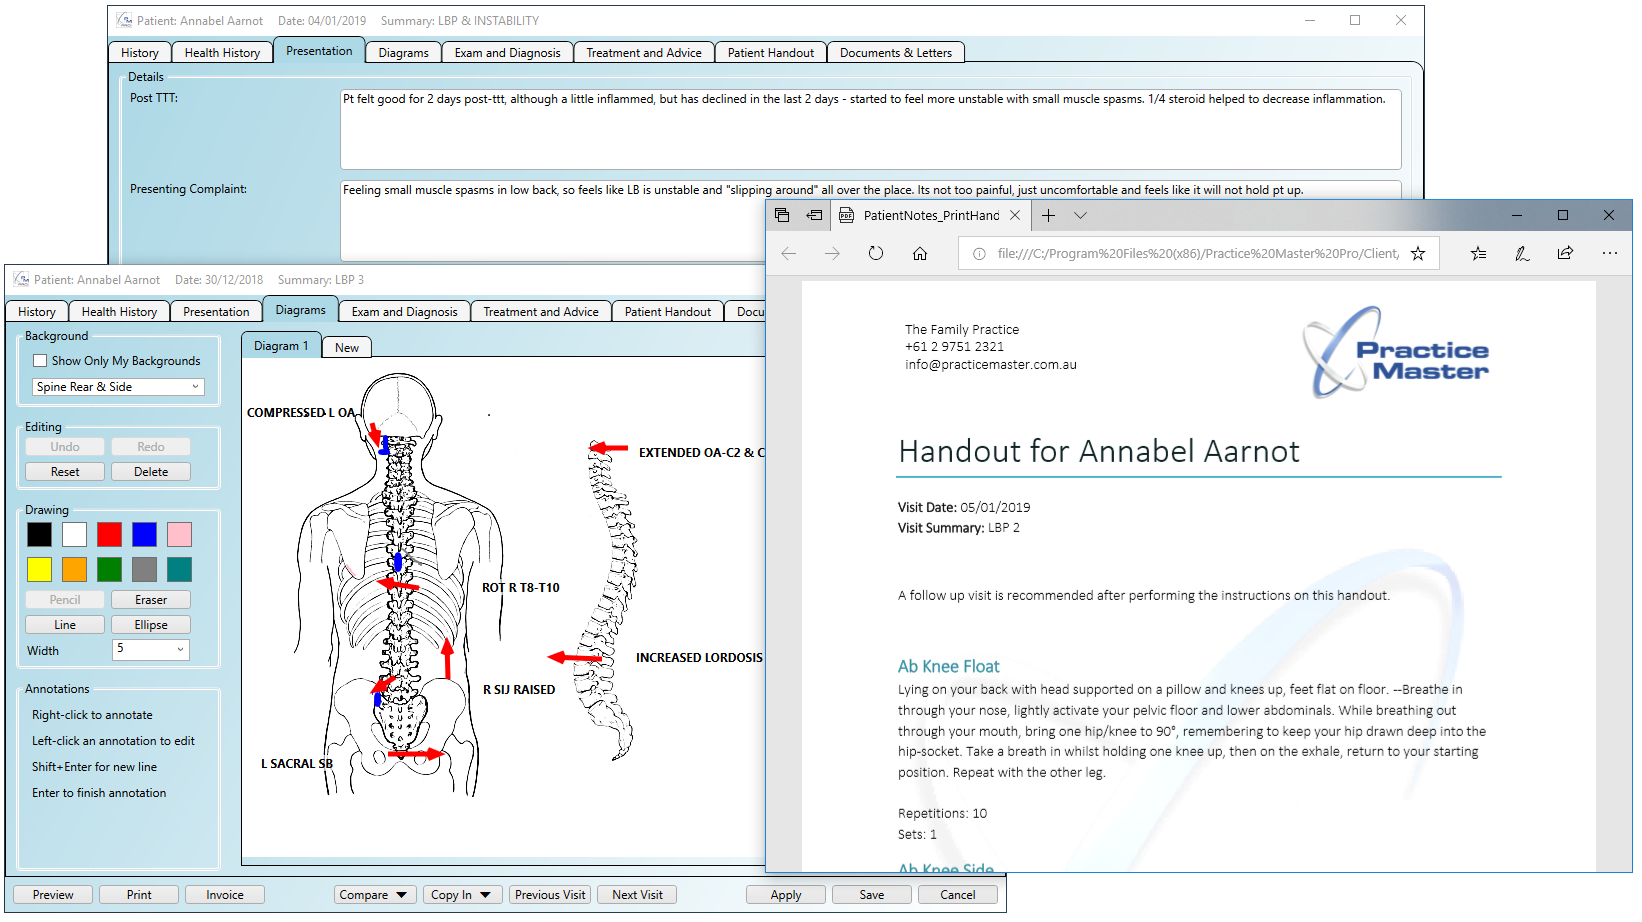 Practice Master Pro customisable patient notes software